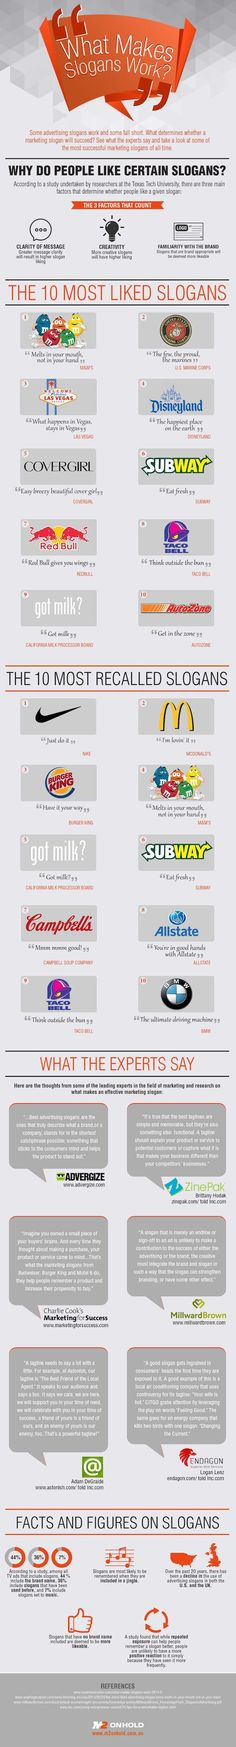 What Makes a Slogan Successful?